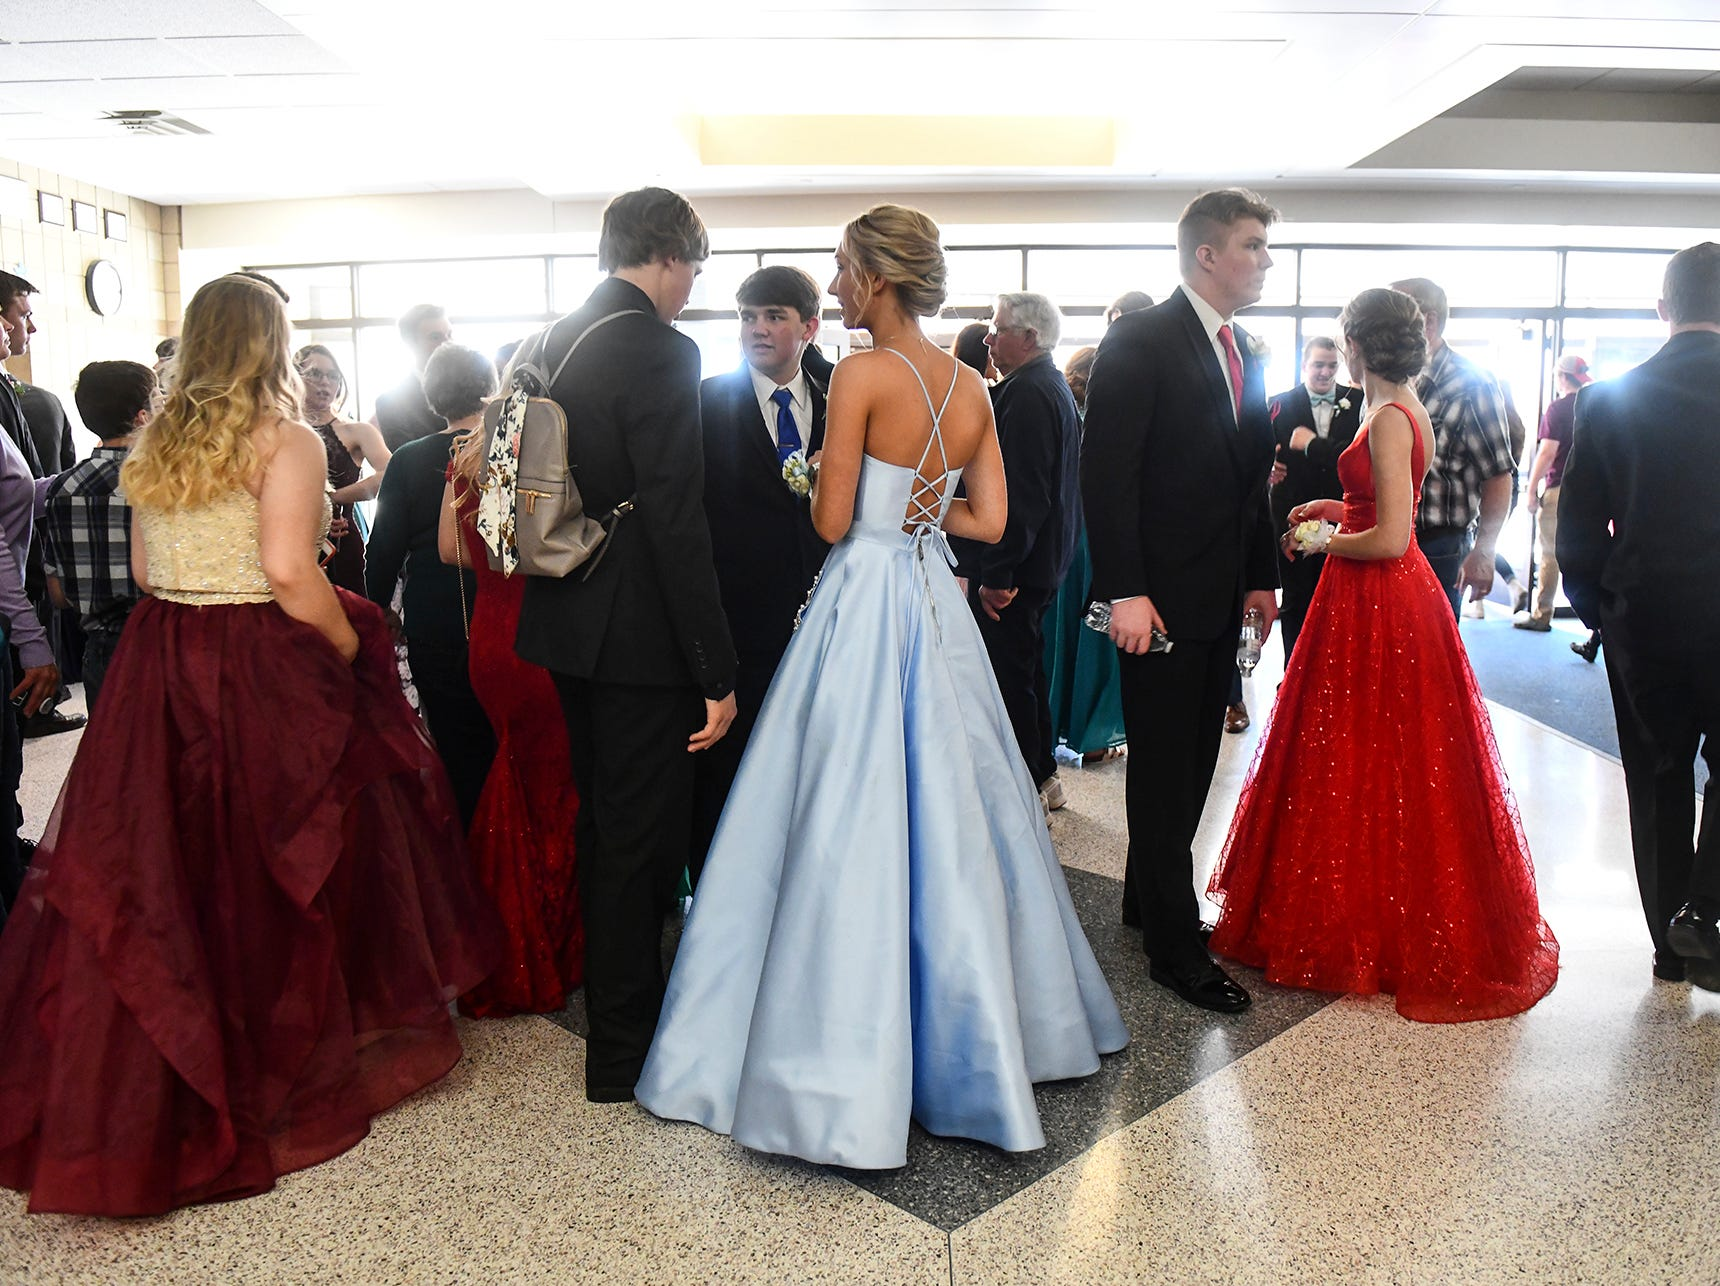 Couples gather after prom grand march Saturday, April 27, at Foley High School.